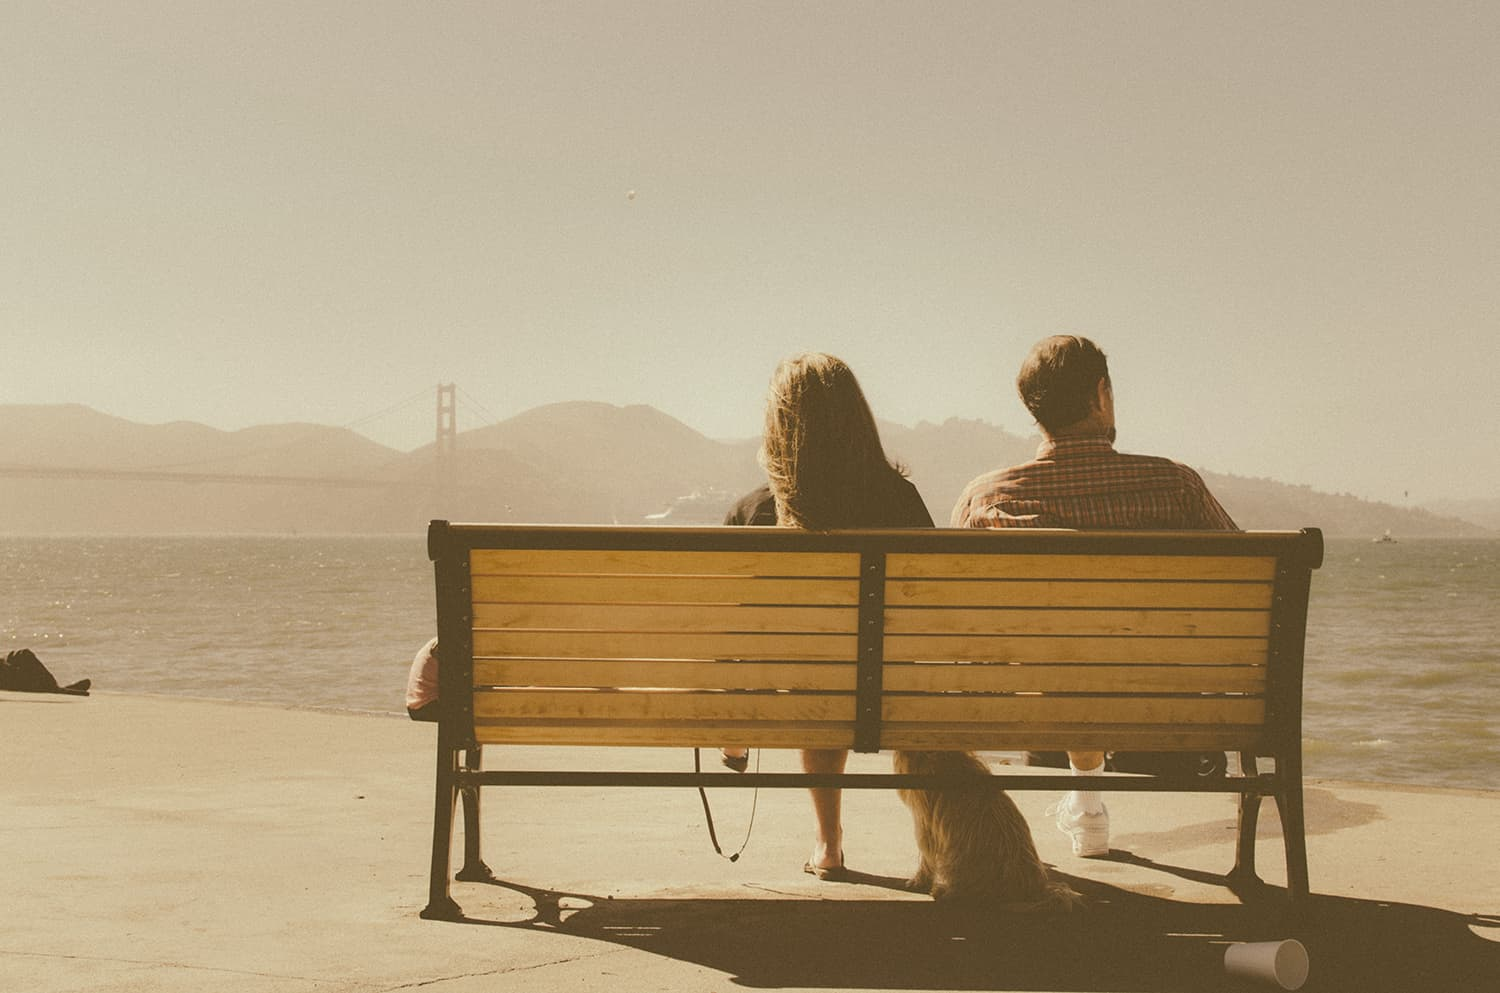 Why You Should Absolutely Travel After a Breakup